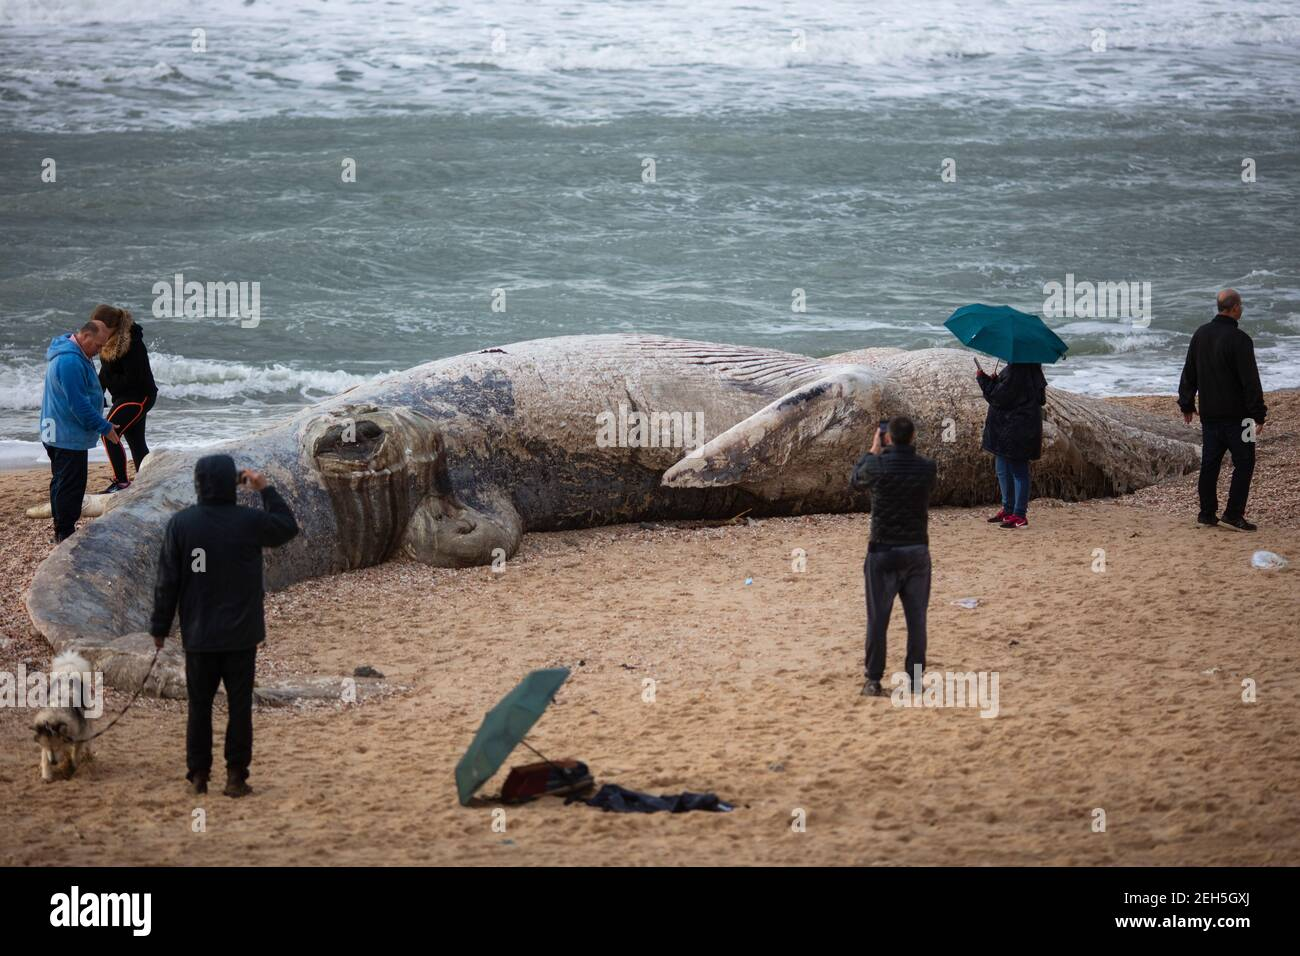 Nitzanim Reserve, Israel. 19th Feb, 2021. People gather around a dead fin whale calf that washed up on a beach south of Tel Aviv. According to Israeli officials, it wasn't clear what caused the death. Credit: Ilia Yefimovich/dpa/Alamy Live News Stock Photo